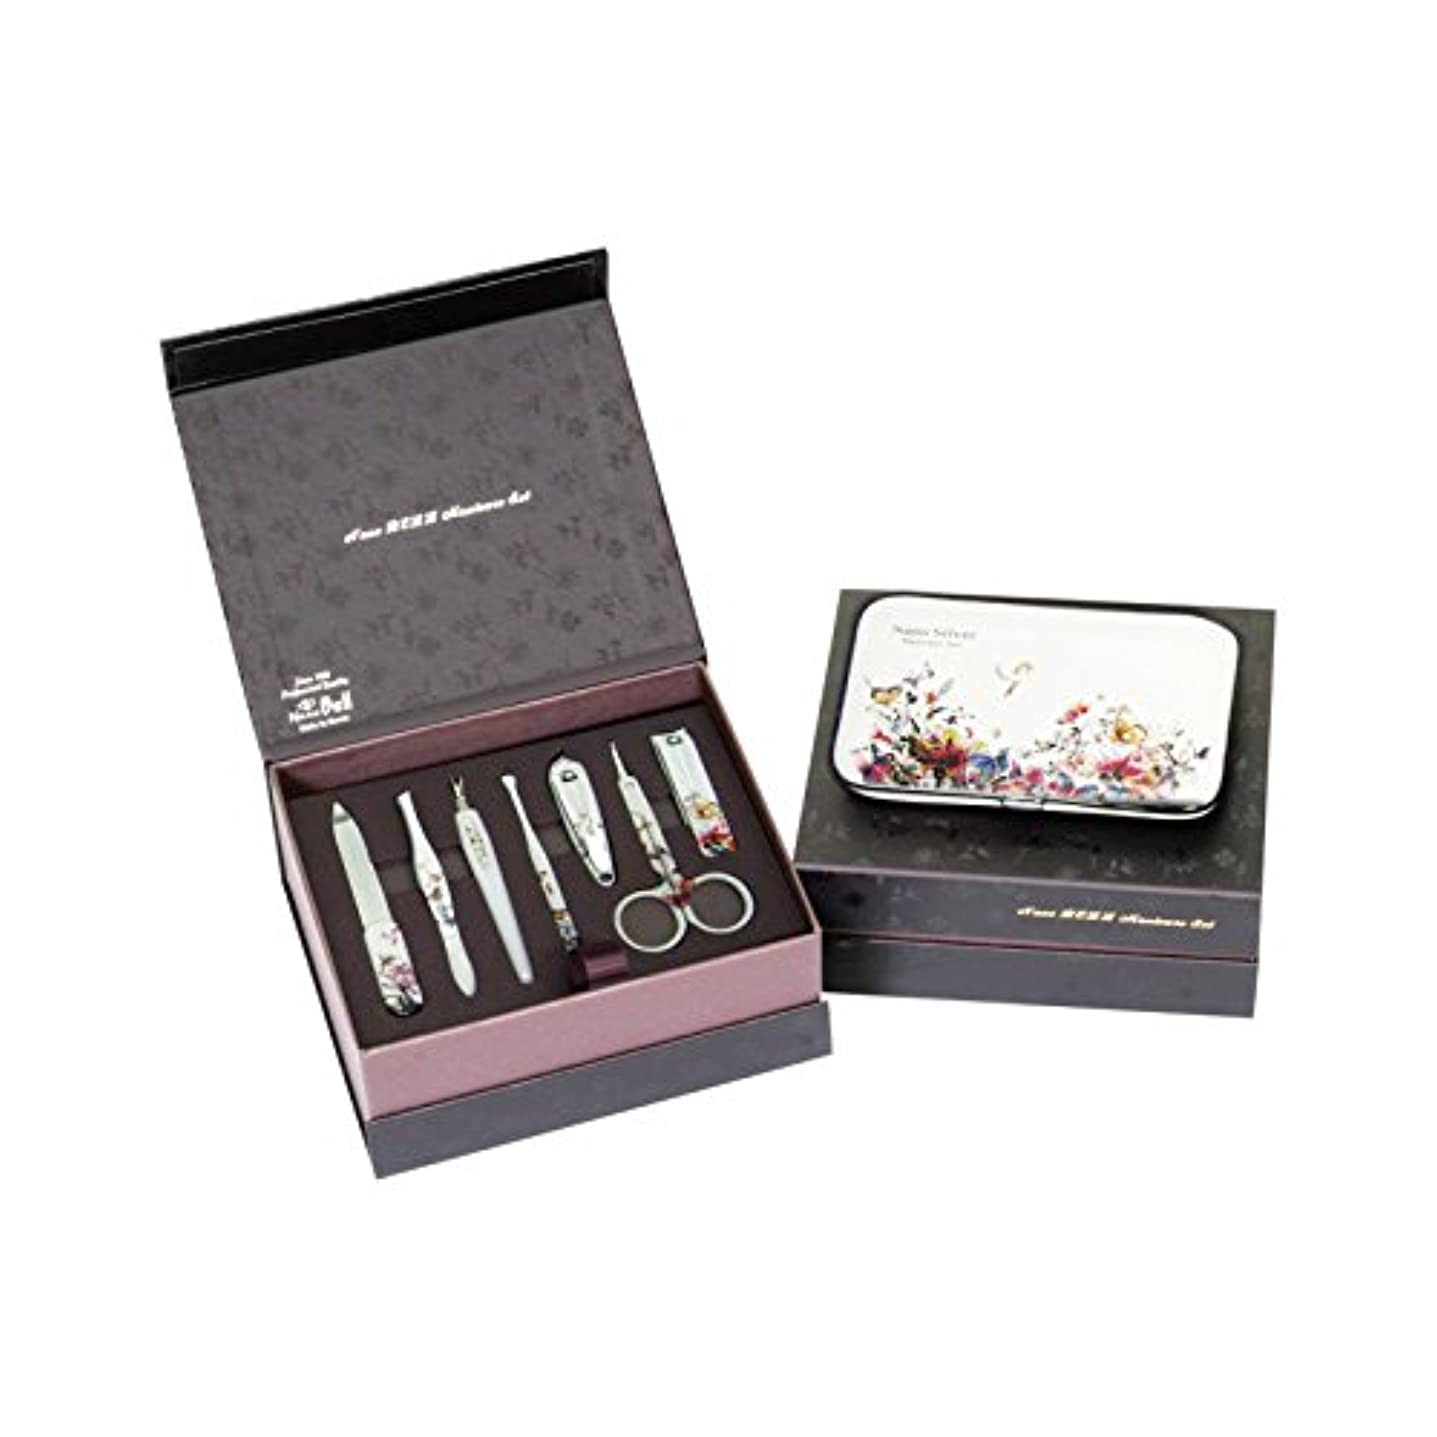 METAL BELL Manicure Sets BN-8177B ポータブル爪の管理セット爪切りセット 高品質のネイルケアセット高級感のある東洋画のデザイン Portable Nail Clippers Nail Care...